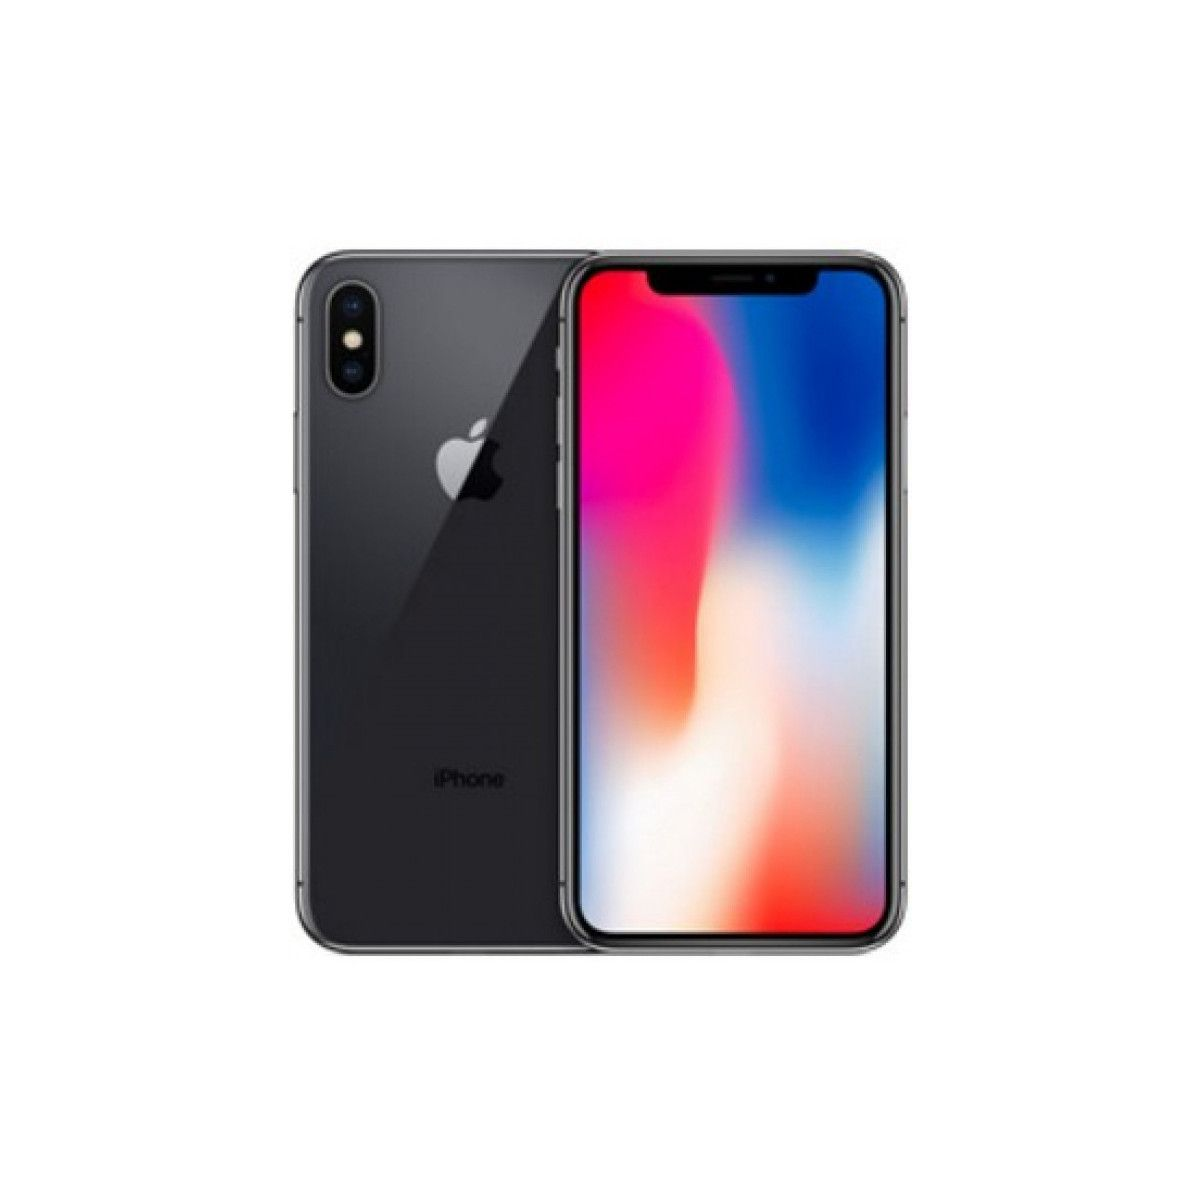 Apple Iphone X With Facetime 4g Lte Iphone Apple Iphone Buy Apple